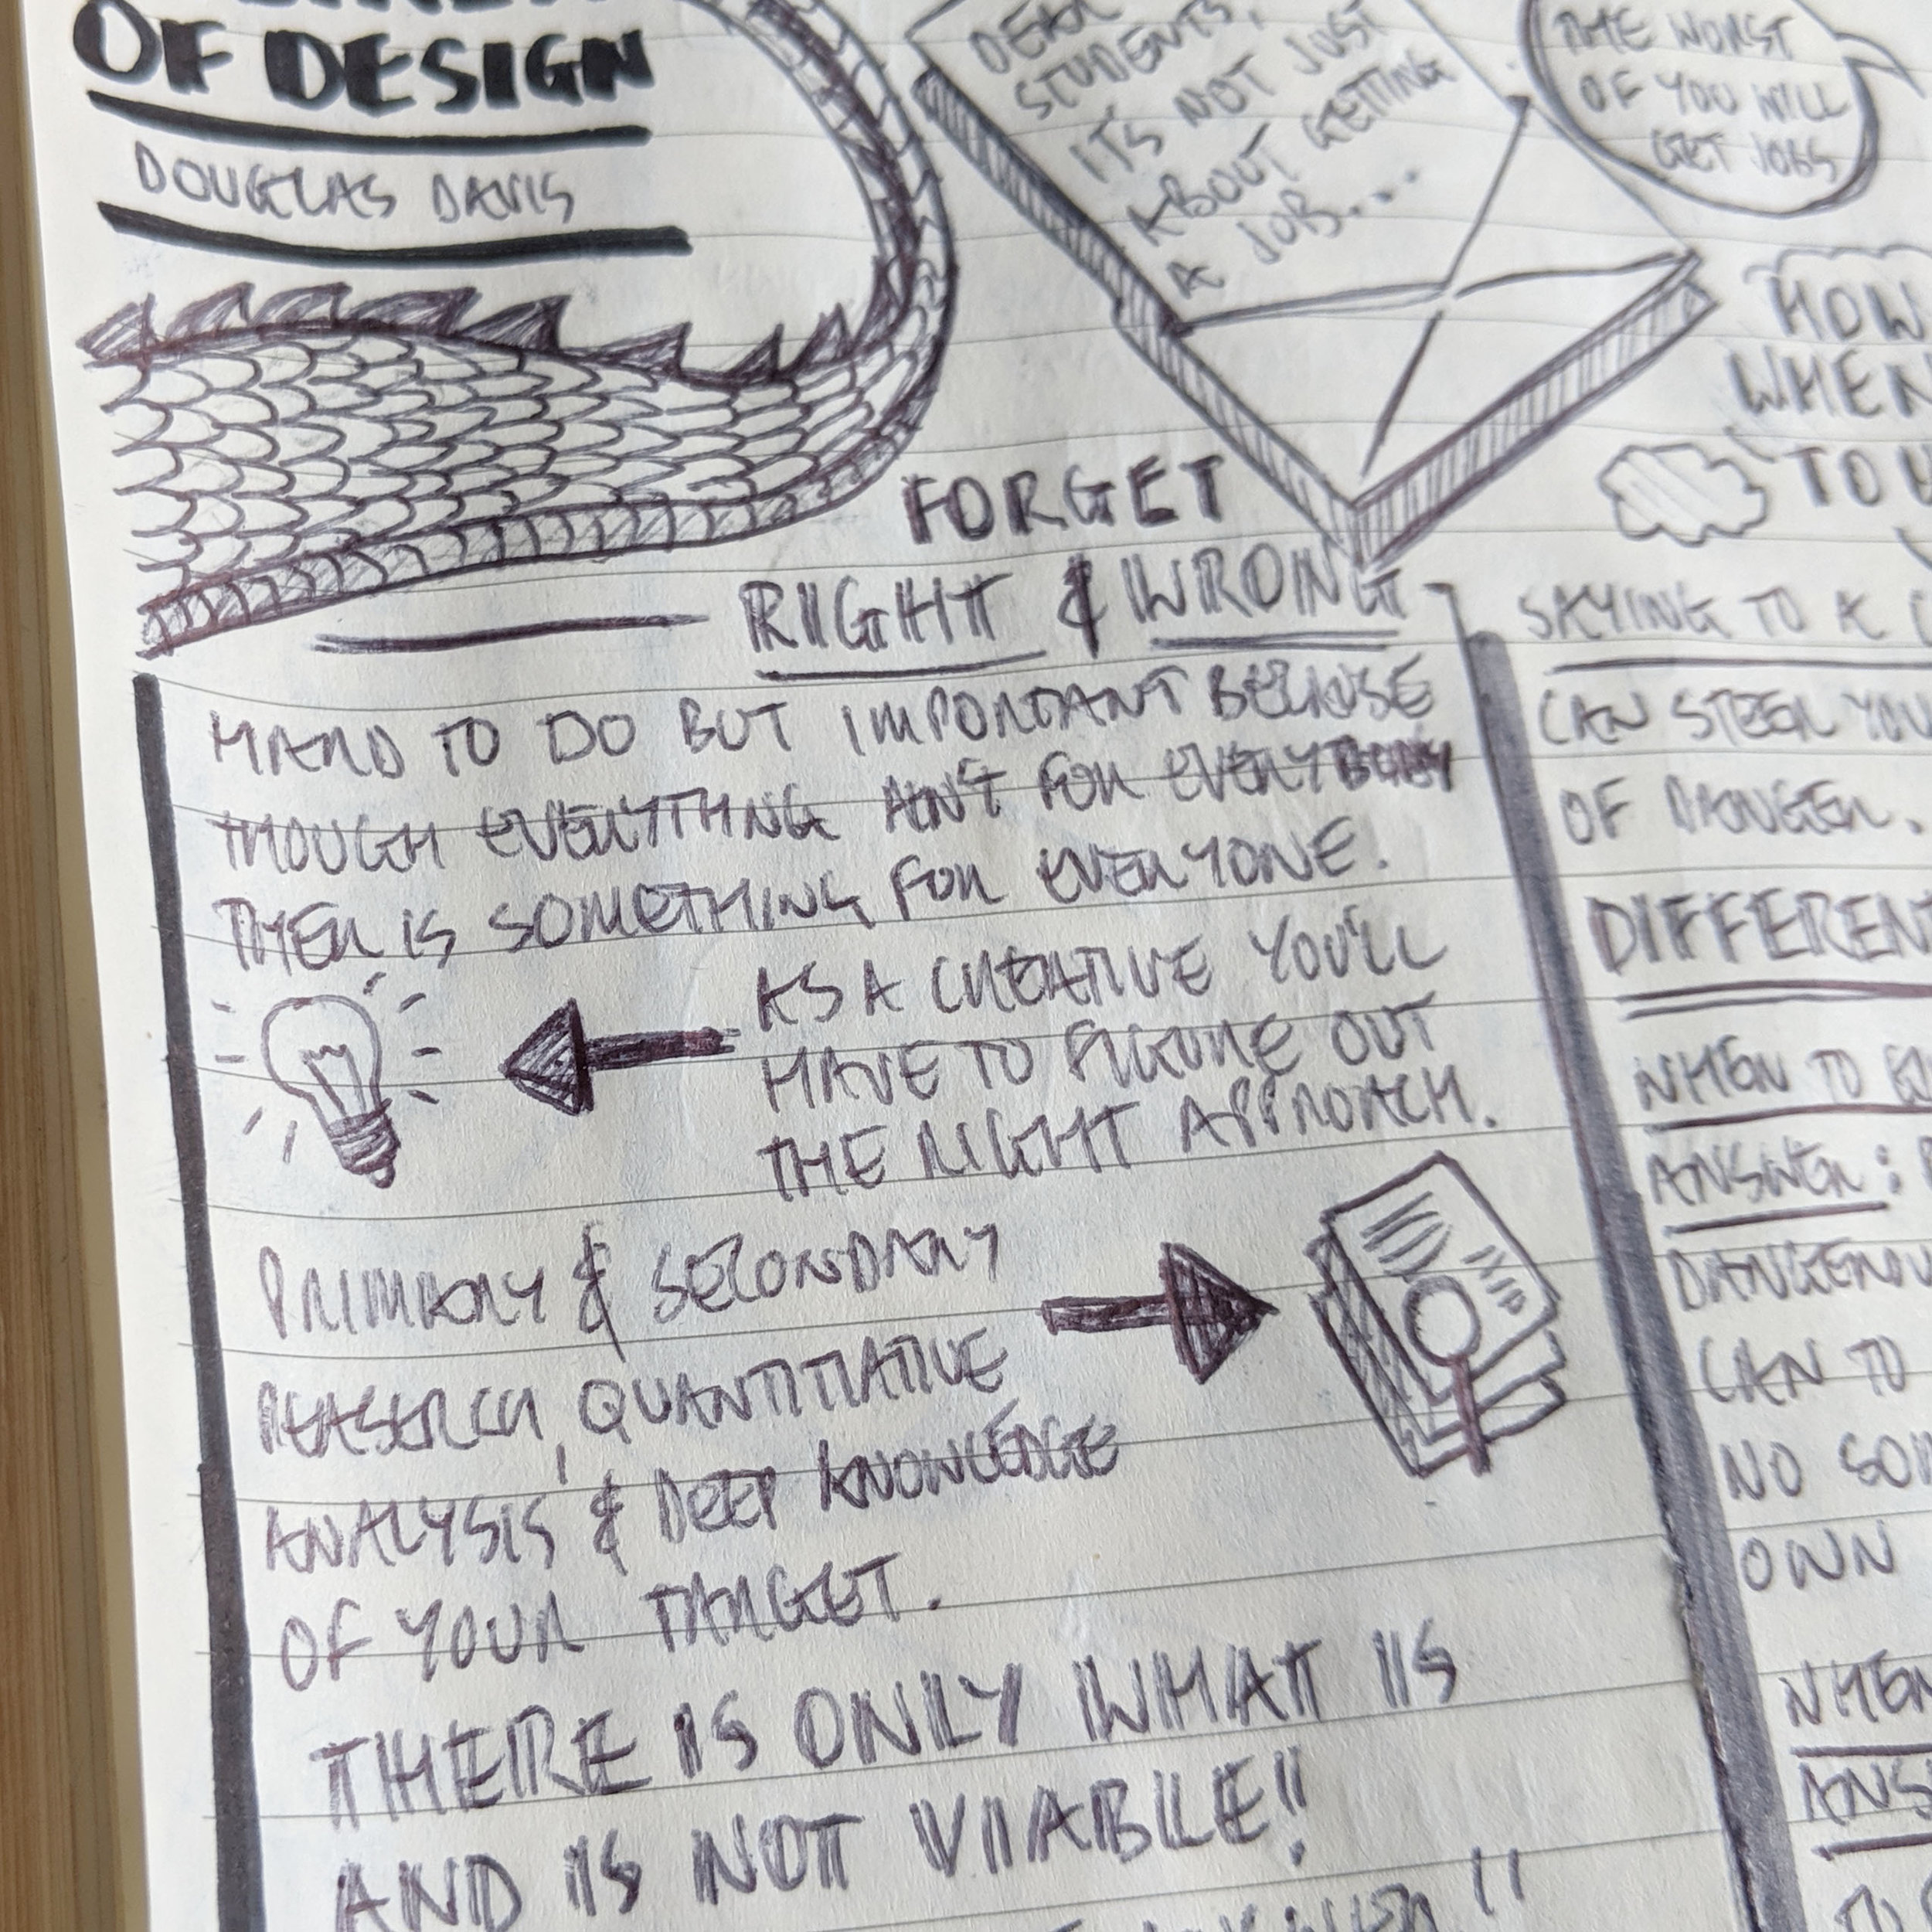 CreativeStrategyAndTheBusinessOfDesign_Part25.4.jpg